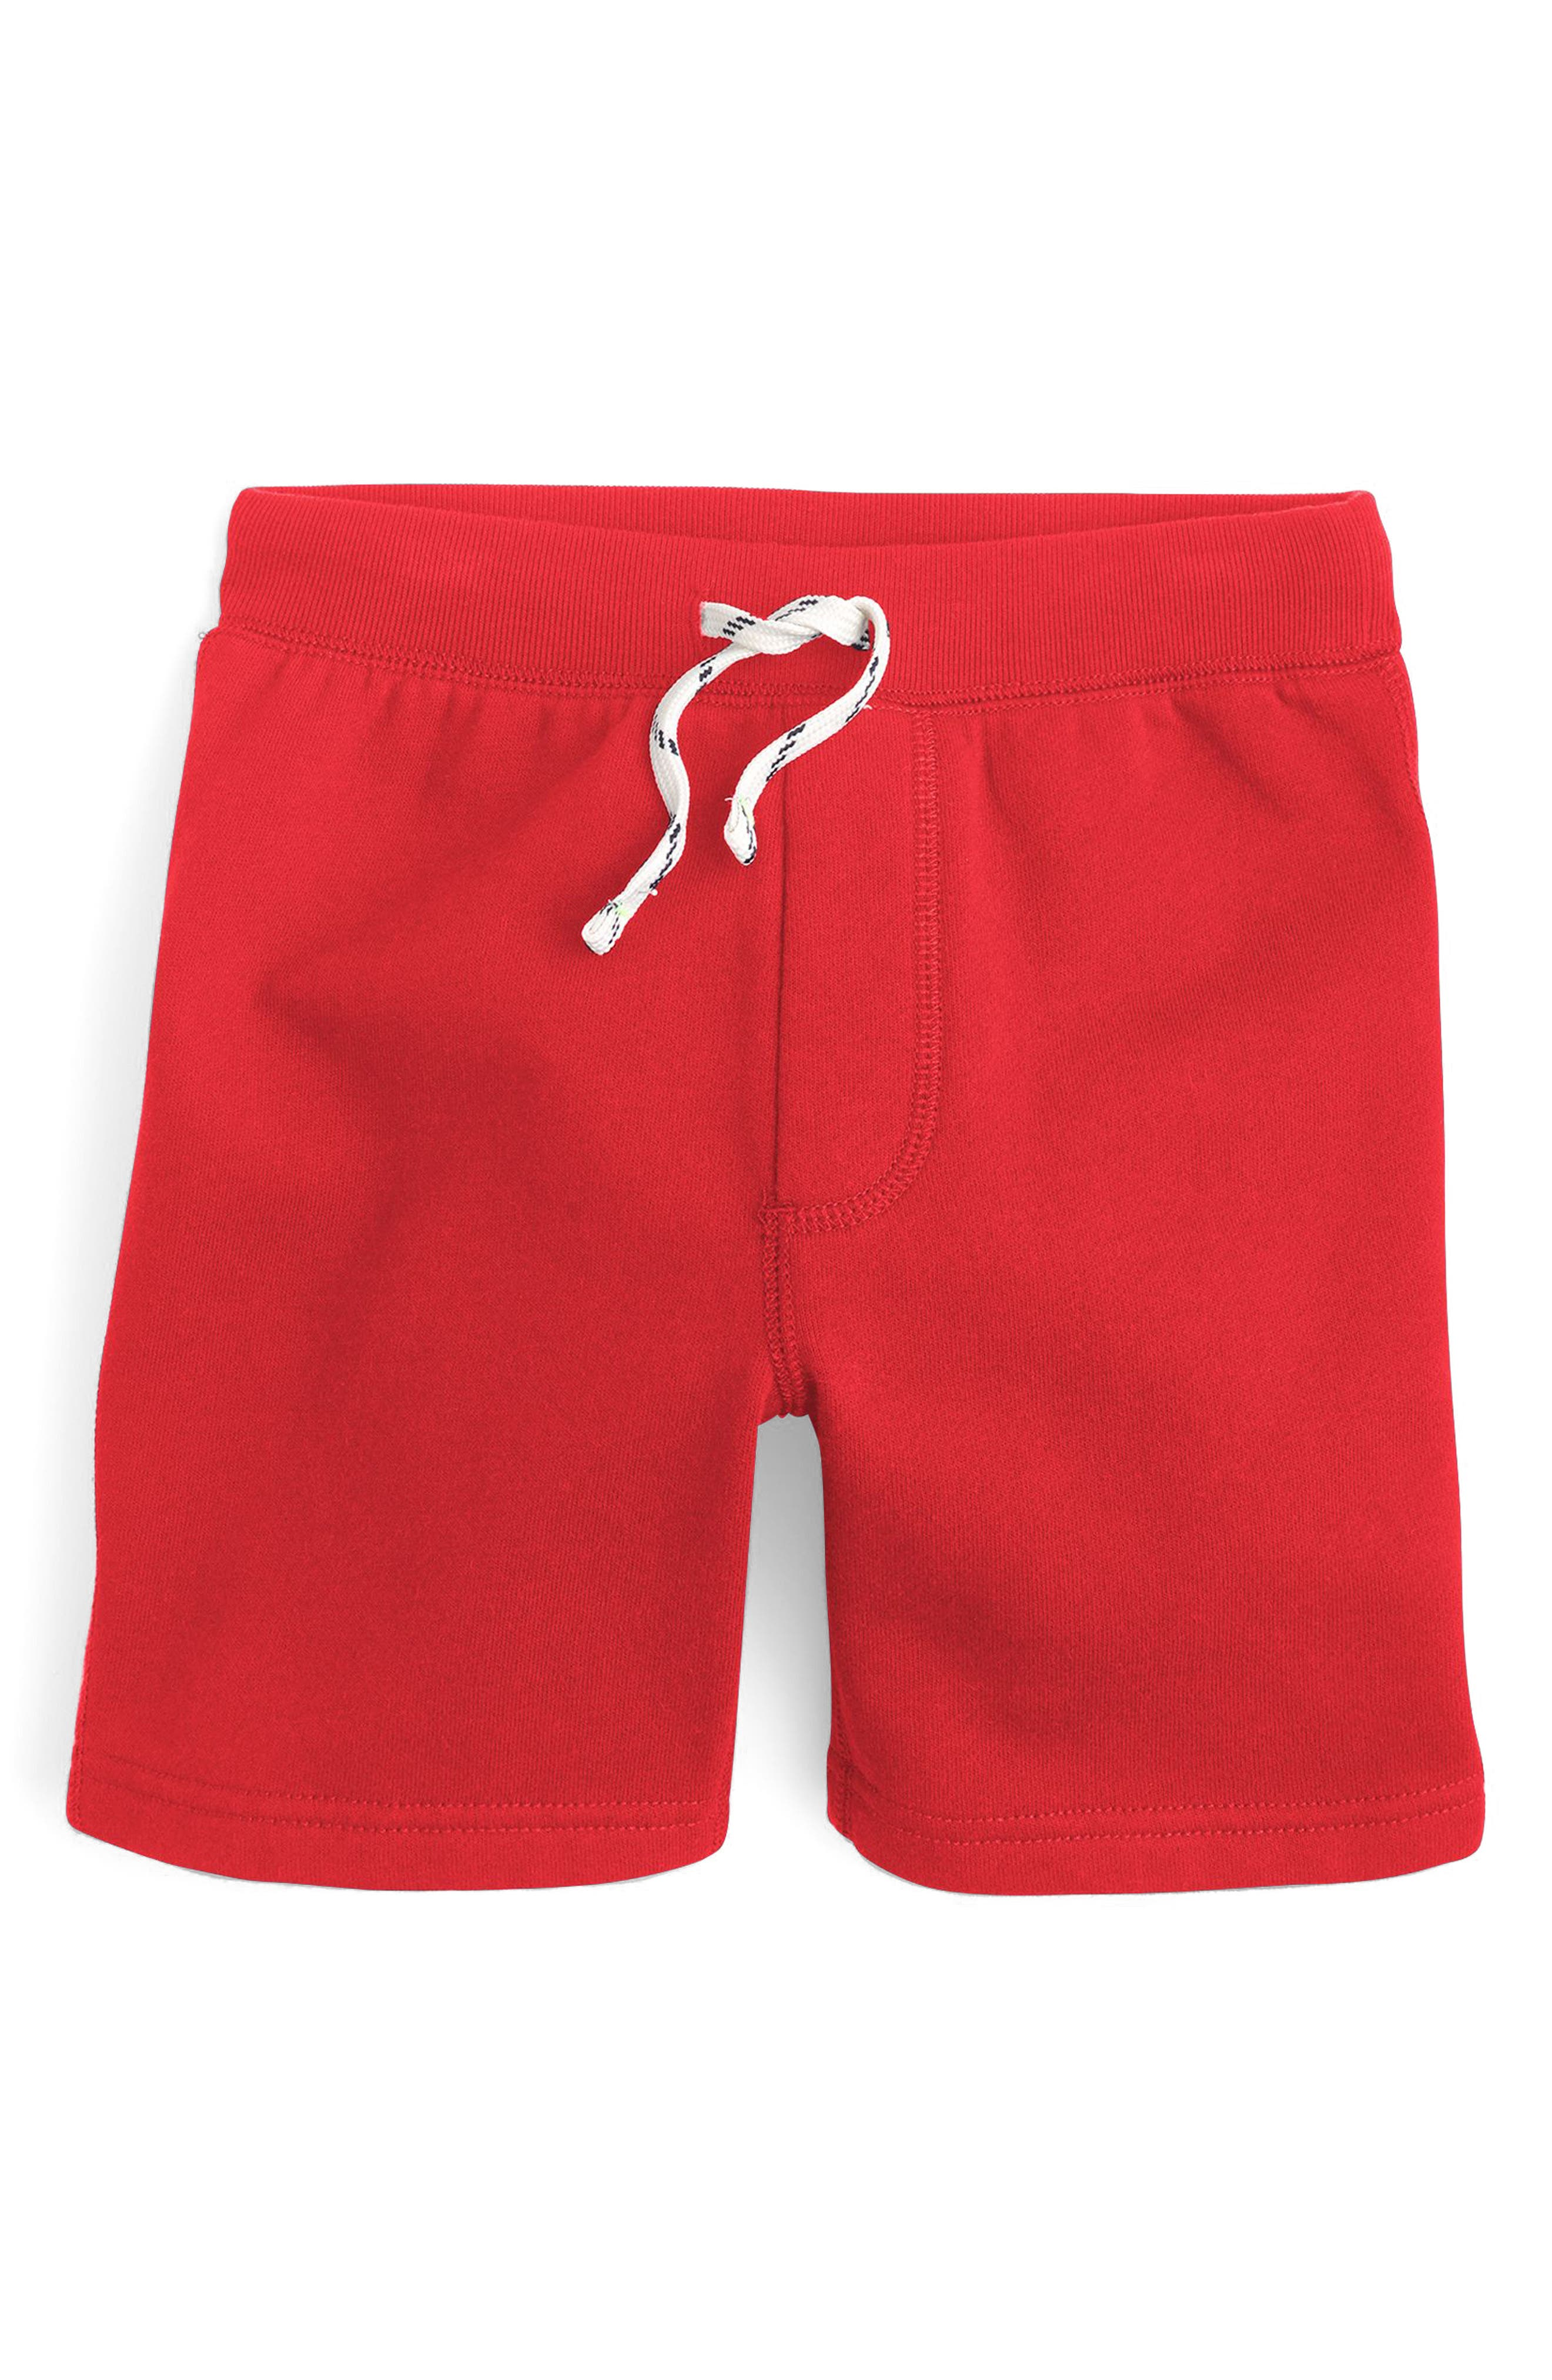 Classic Sweat Shorts,                         Main,                         color, Milan Red